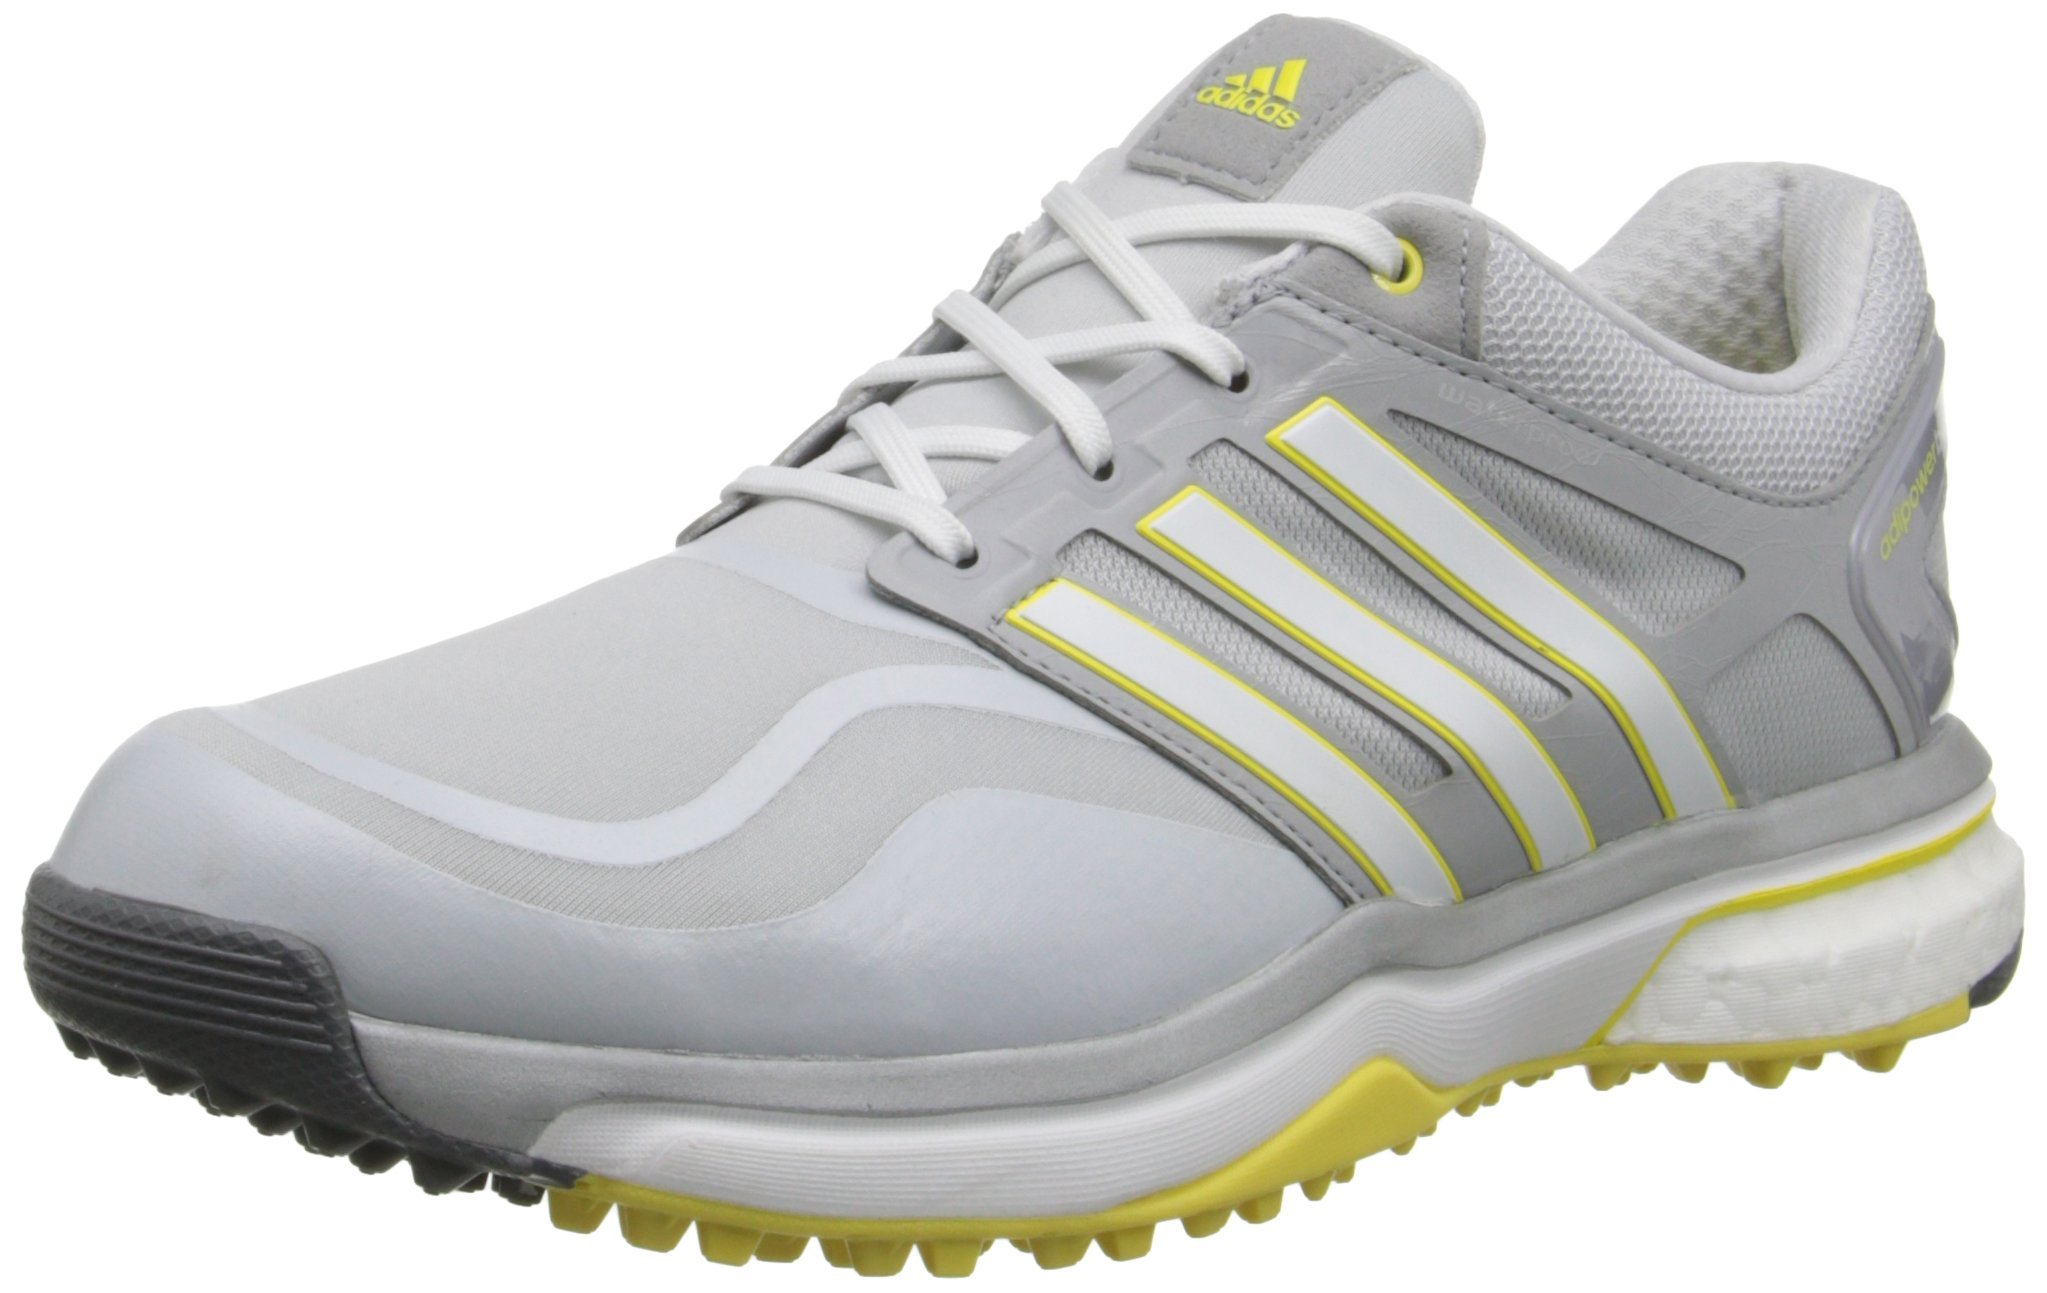 adidas Women's W Adipower S Boost Golf Shoe, Clear Grey/Running White/Light Yellow, 8.5 M US by adidas